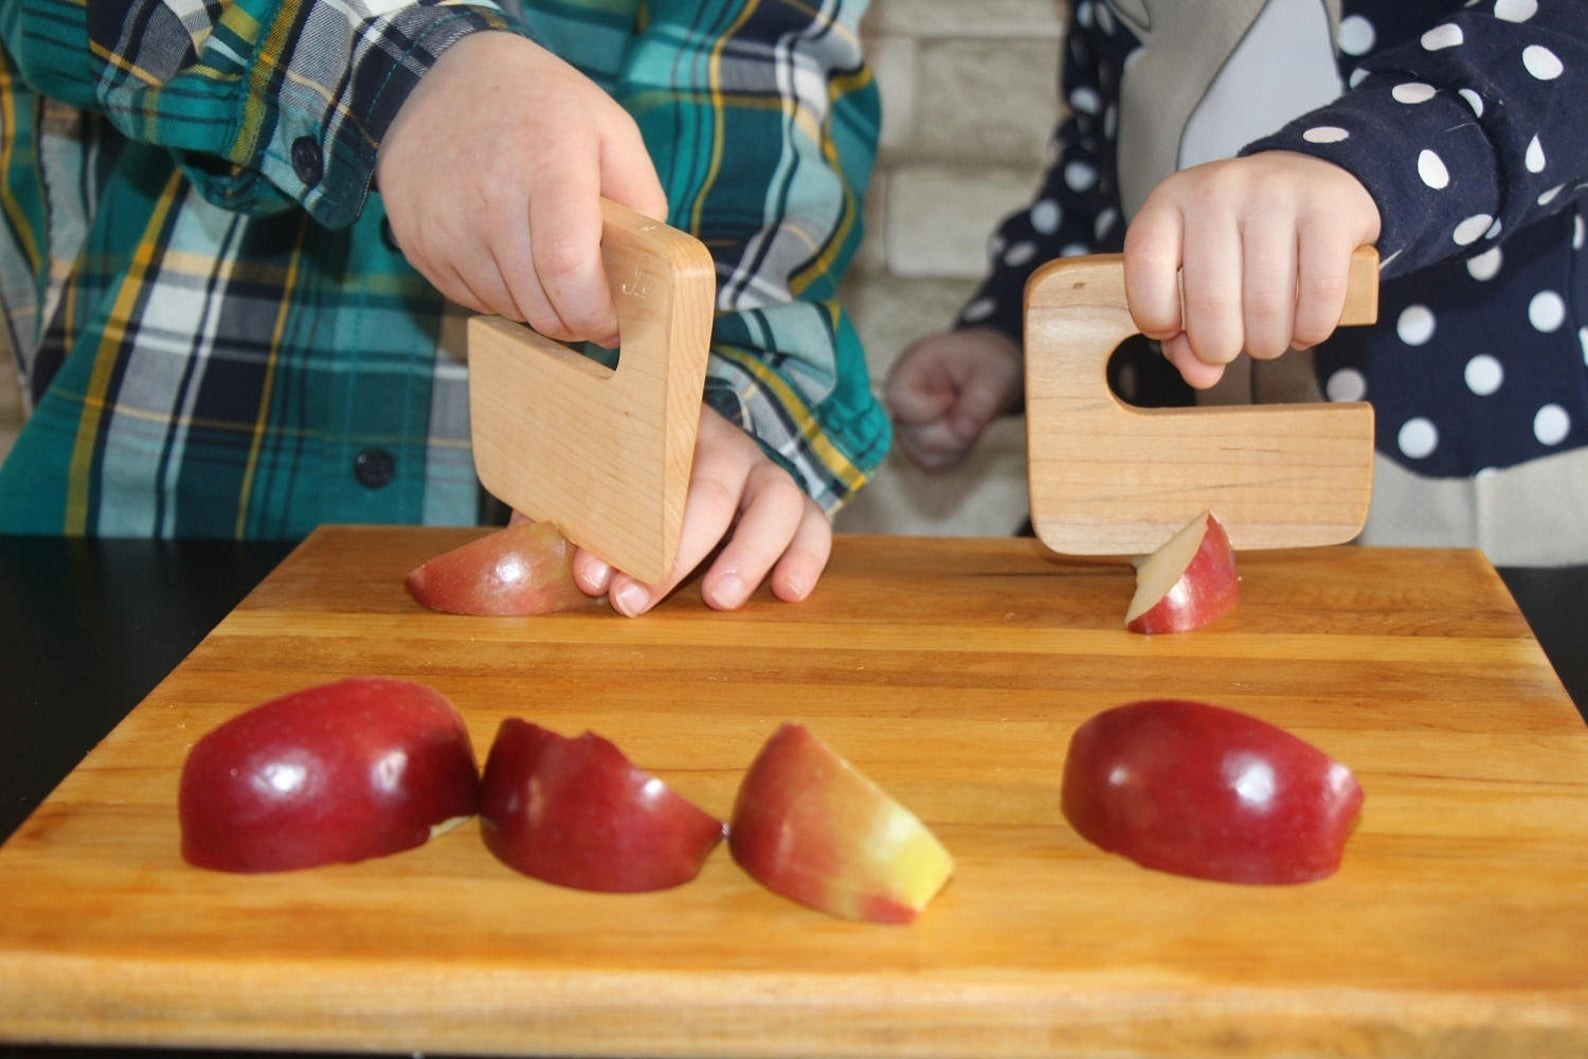 """Kids hands holding the wooden """"knives"""" with handles to cut up apple slices"""